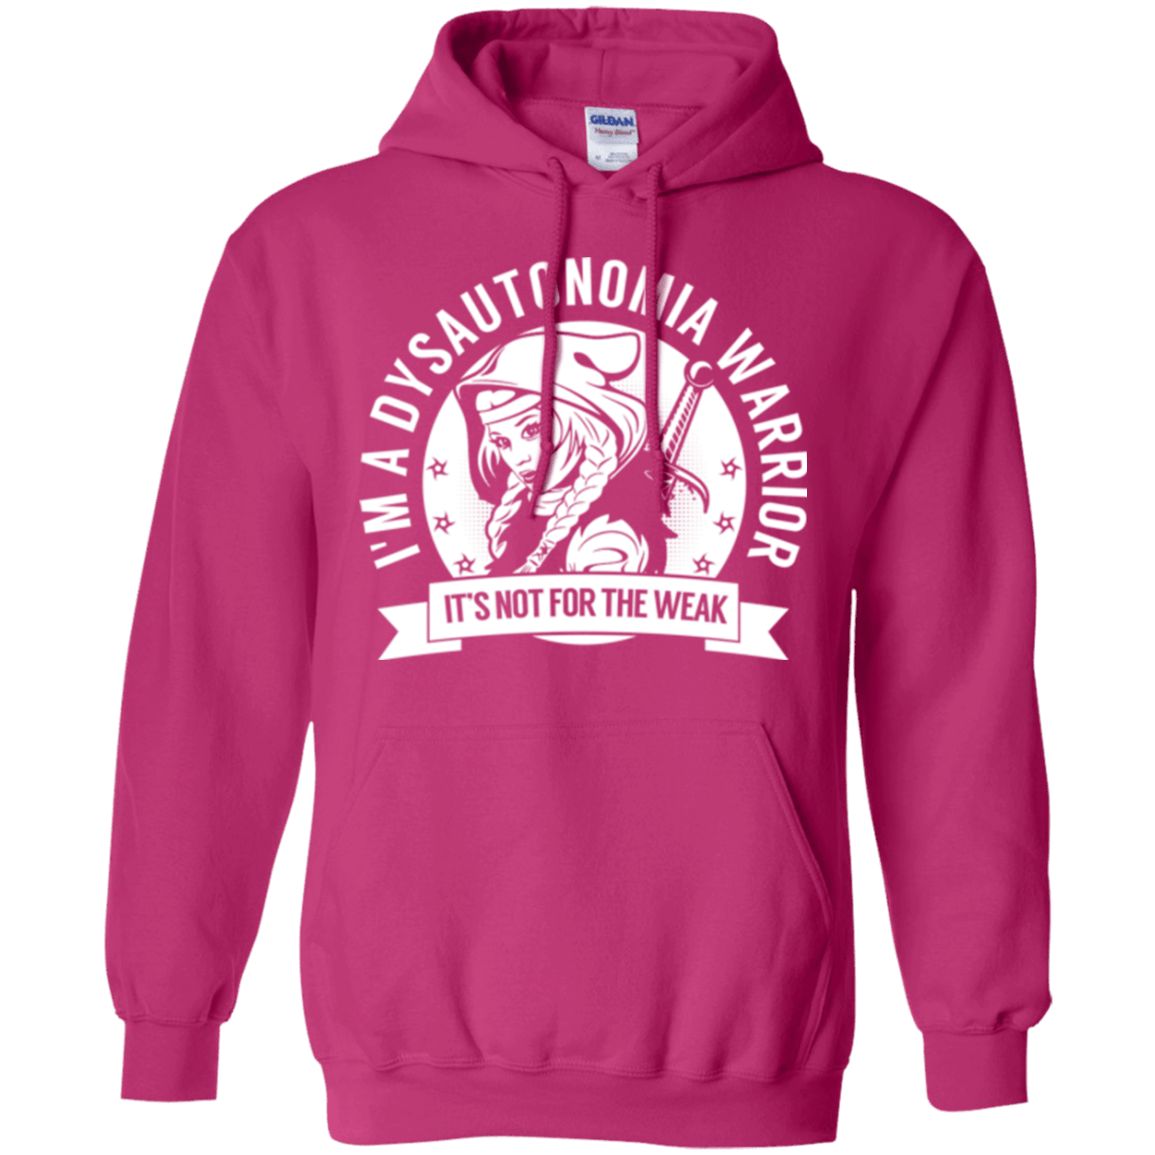 Dysautonomia Warrior Hooded Pullover Hoodie 8 oz. - The Unchargeables